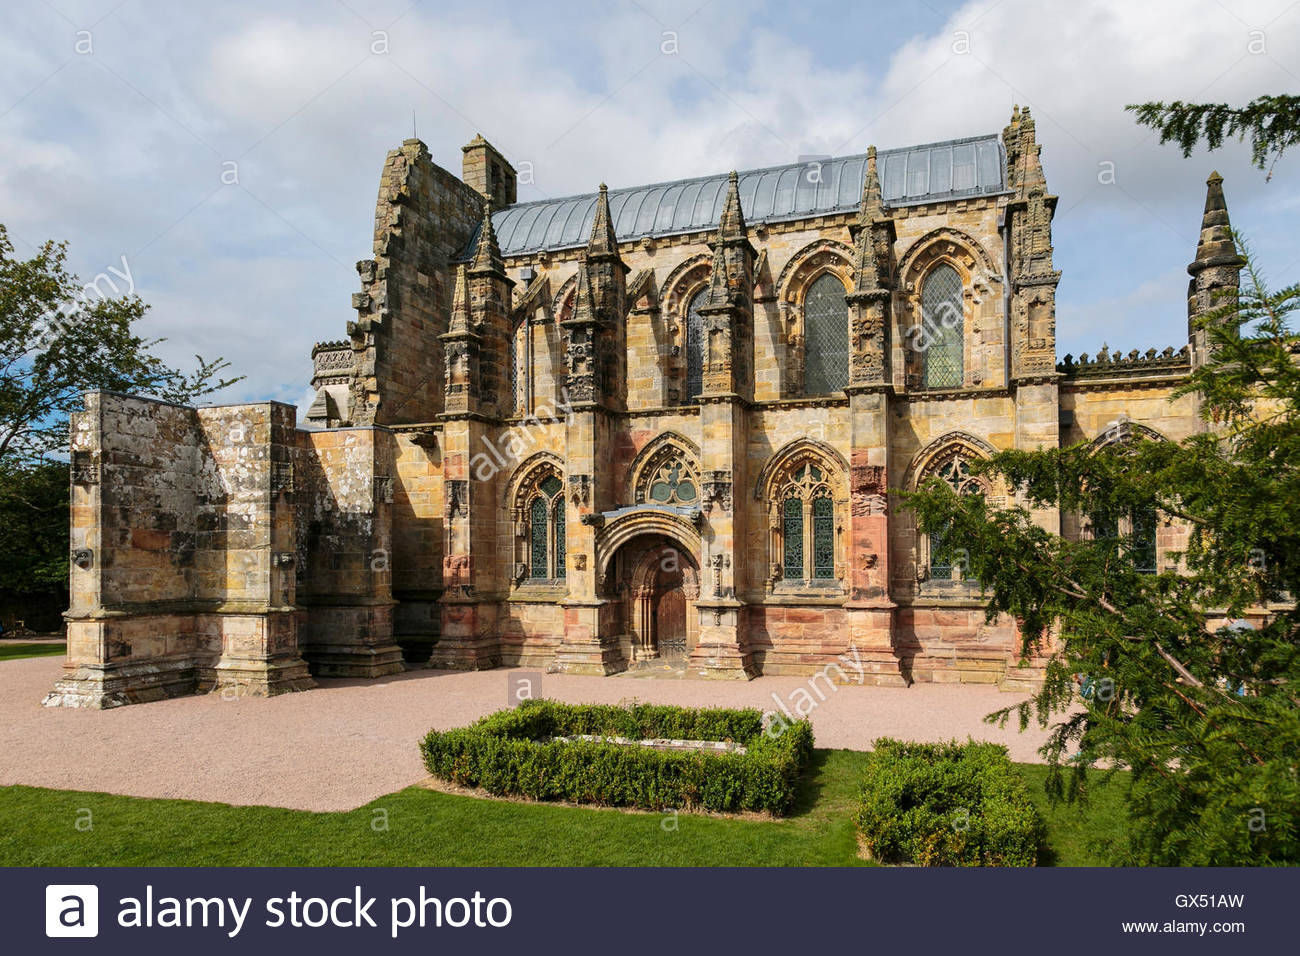 The enchanting Rosslyn Chapel on the outskirts of Edinburgh in the small village of Roslin. - Stock Image